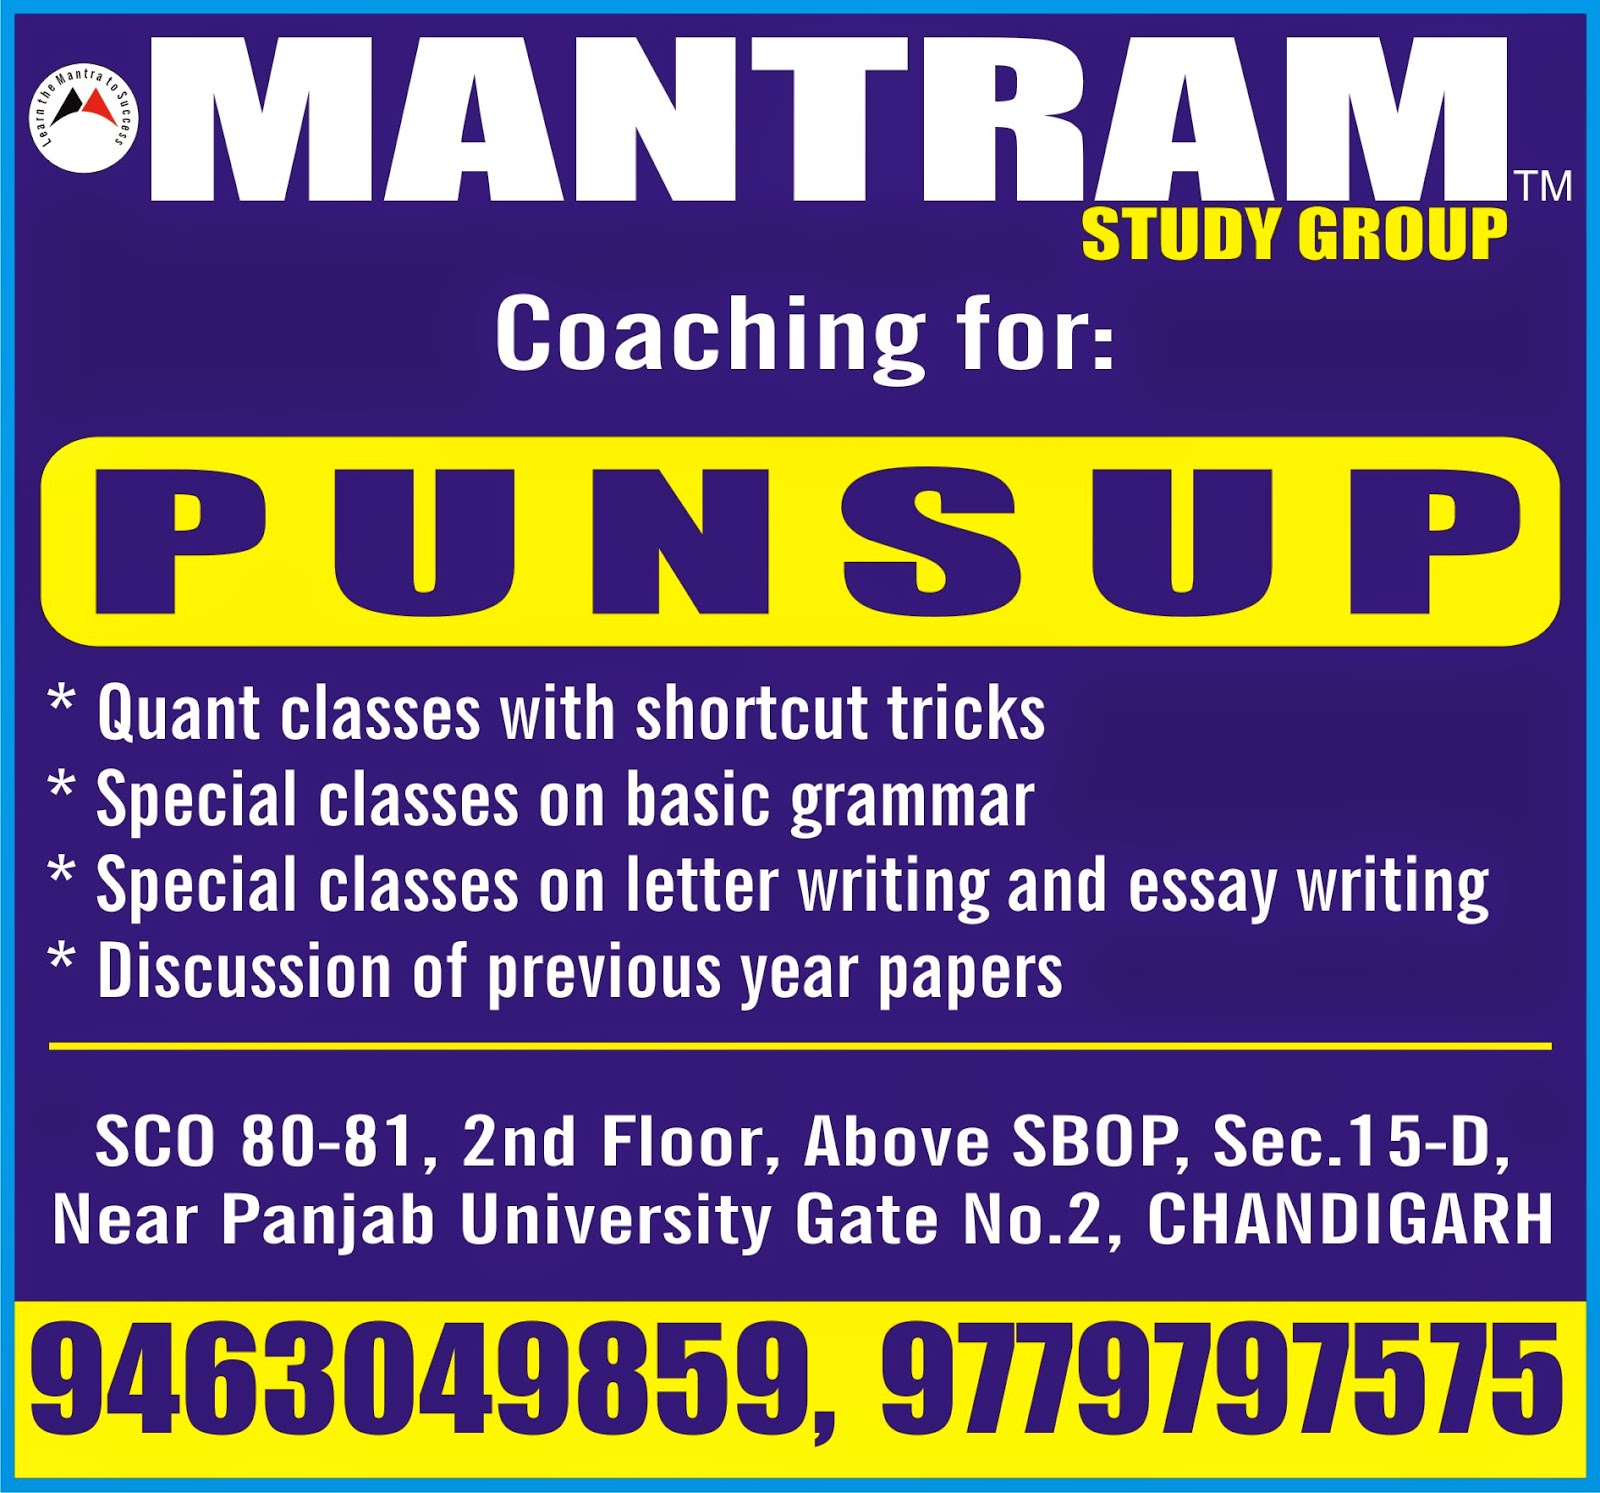 mantram study group punjab jobs 2017 2018 expert coaching for punsup by mantram study group in chandigarh